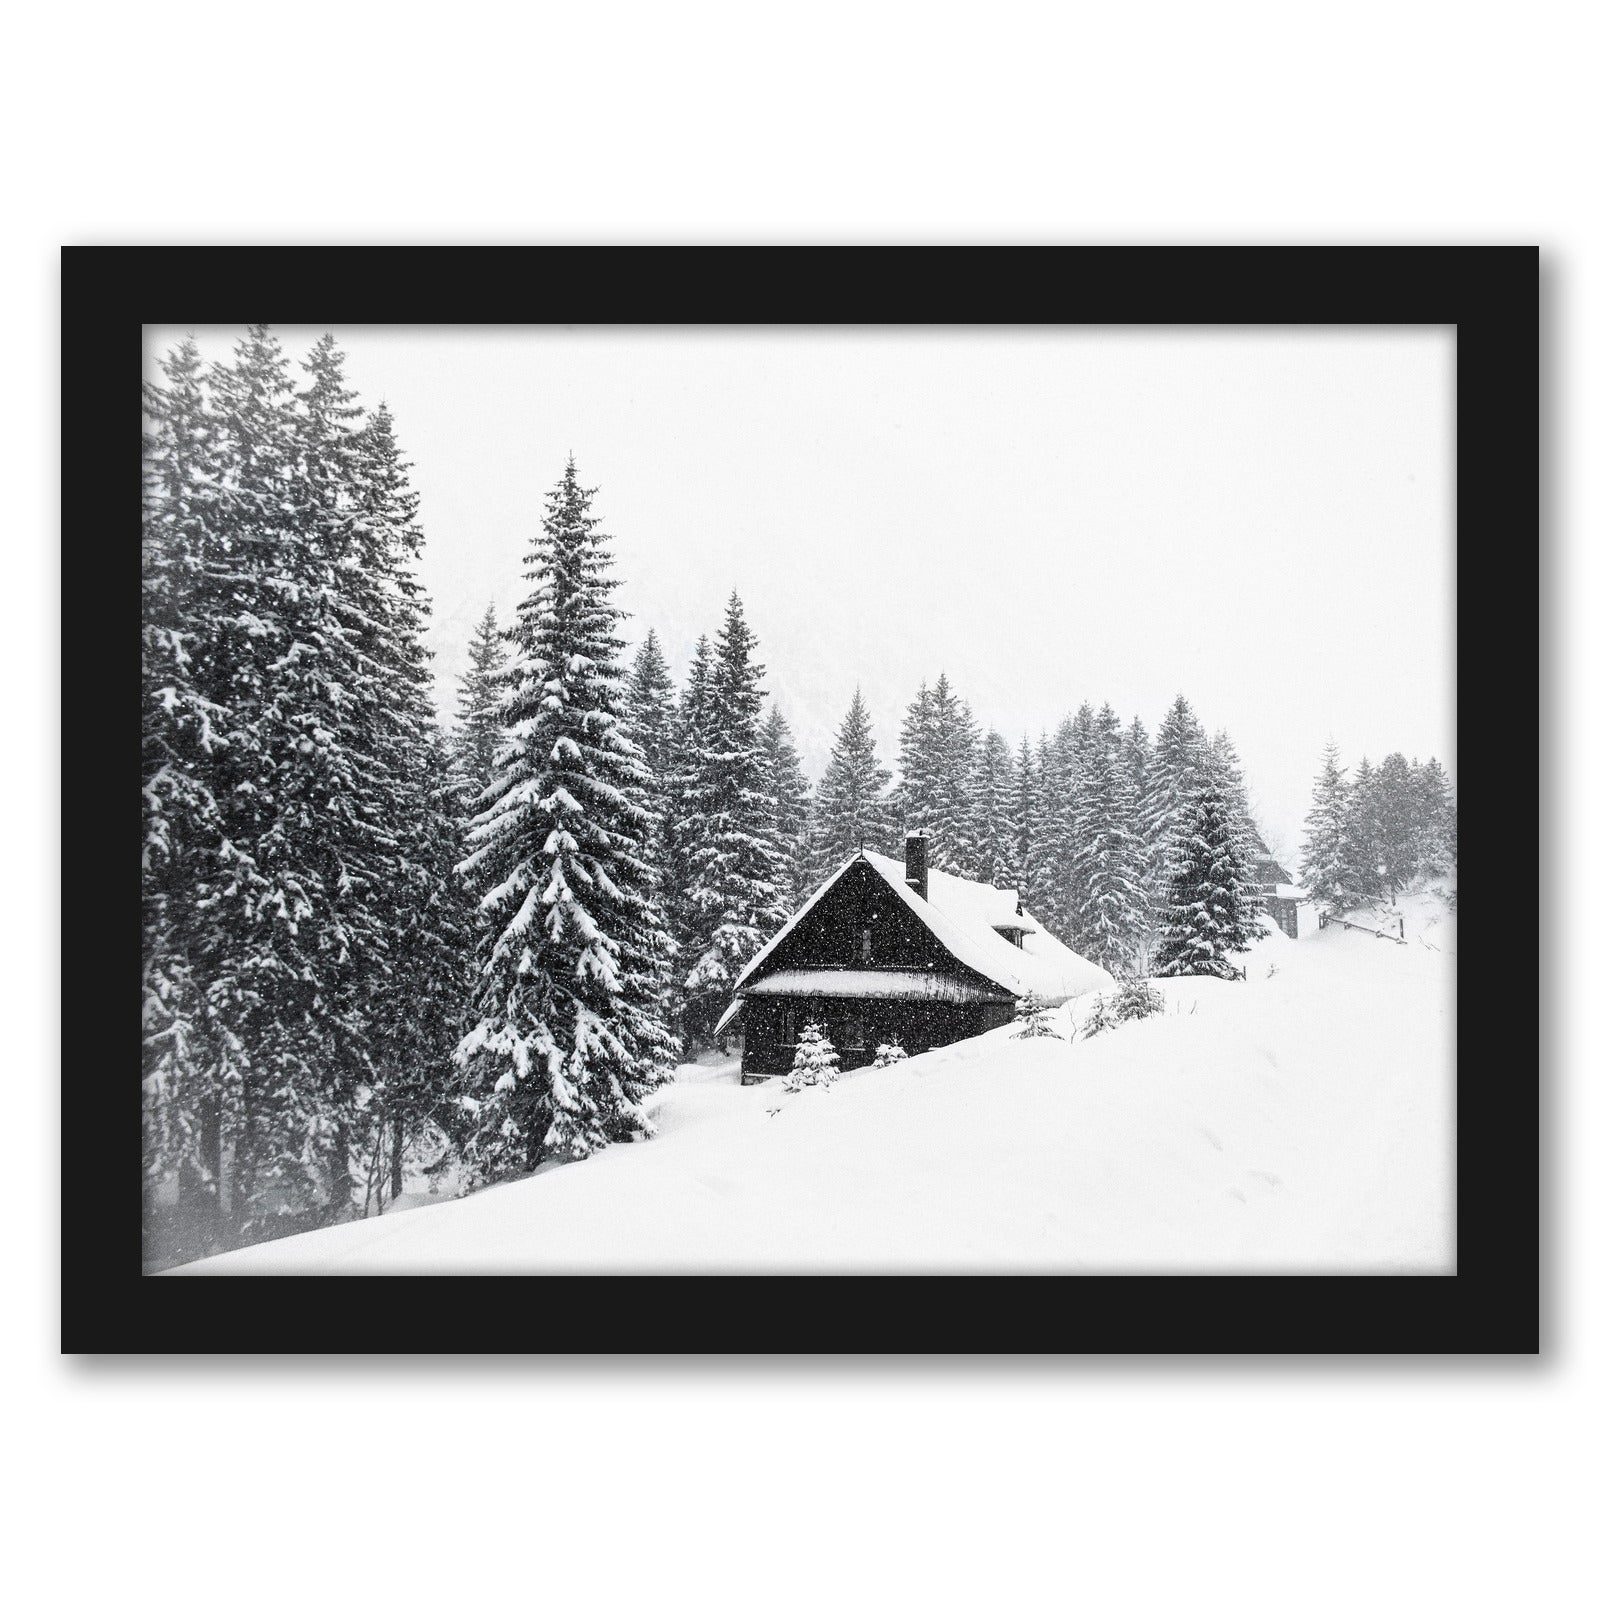 Winter Nature Scene by Tanya Shumkina - Black Framed Print - Wall Art - Americanflat